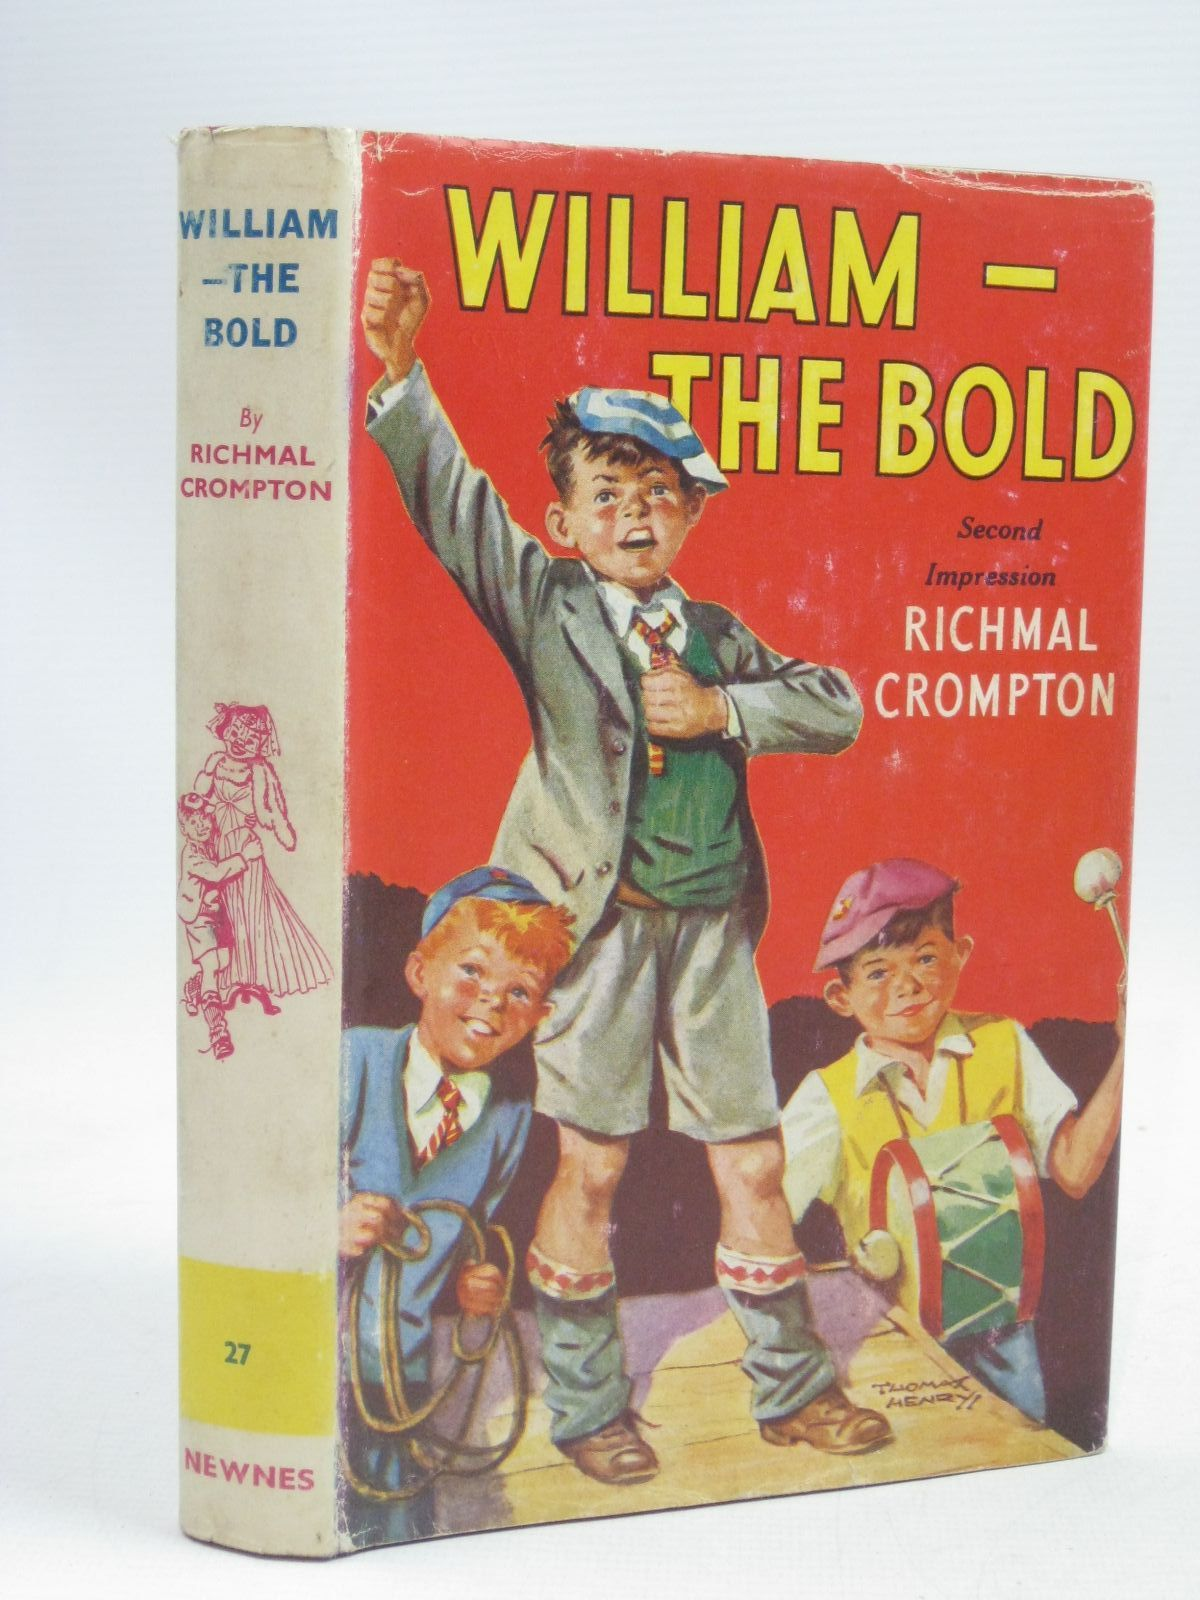 Cover of WILLIAM-THE BOLD by Richmal Crompton